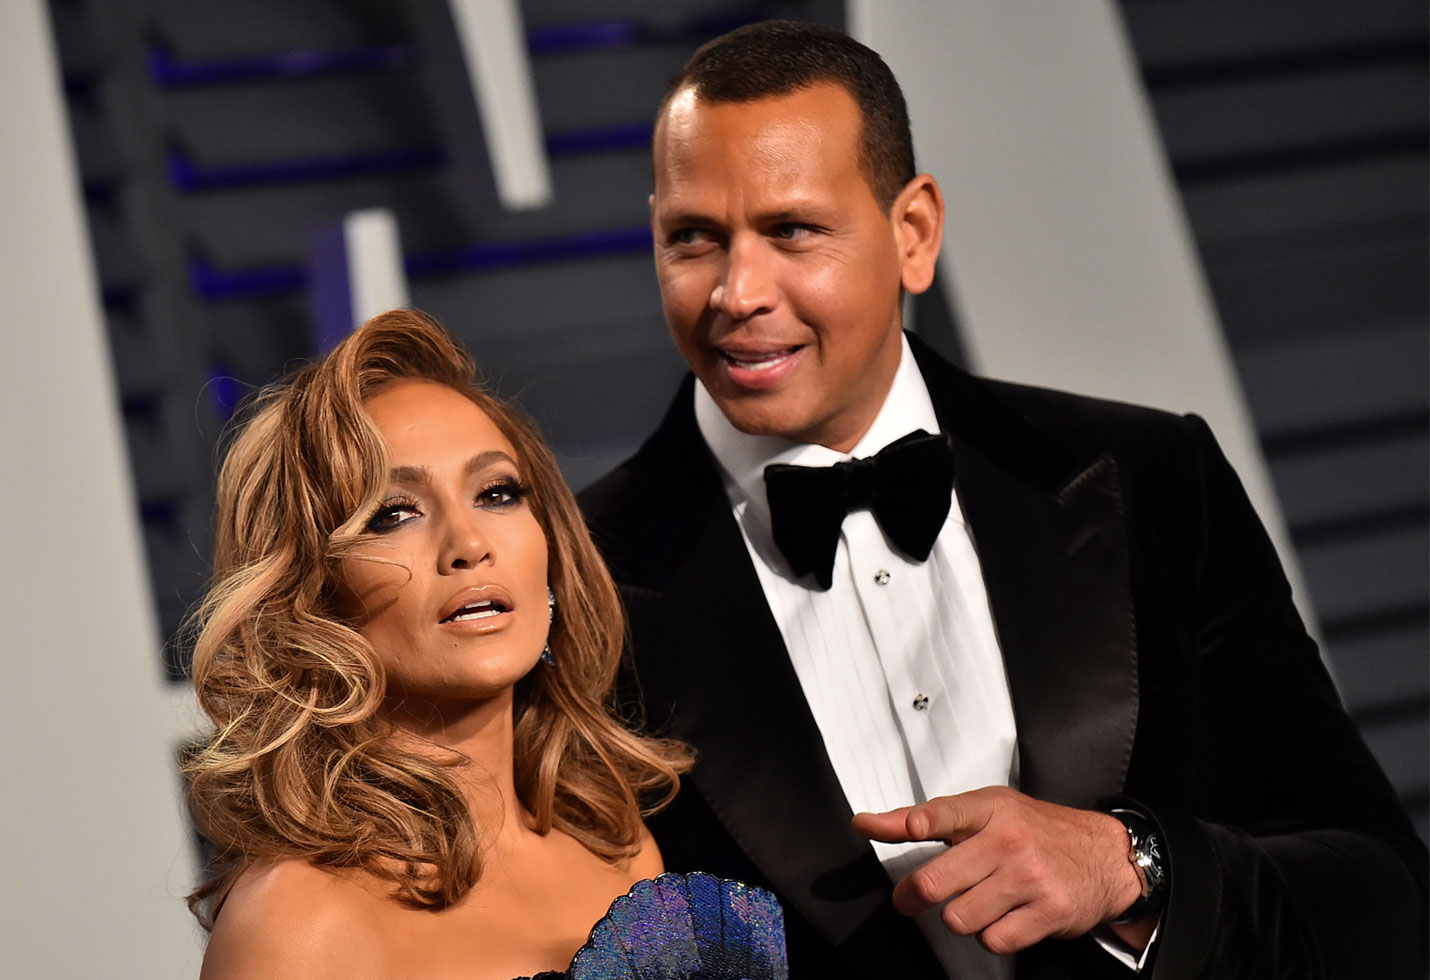 Alex rodriguez cheating allegations jennifer lopez engagement